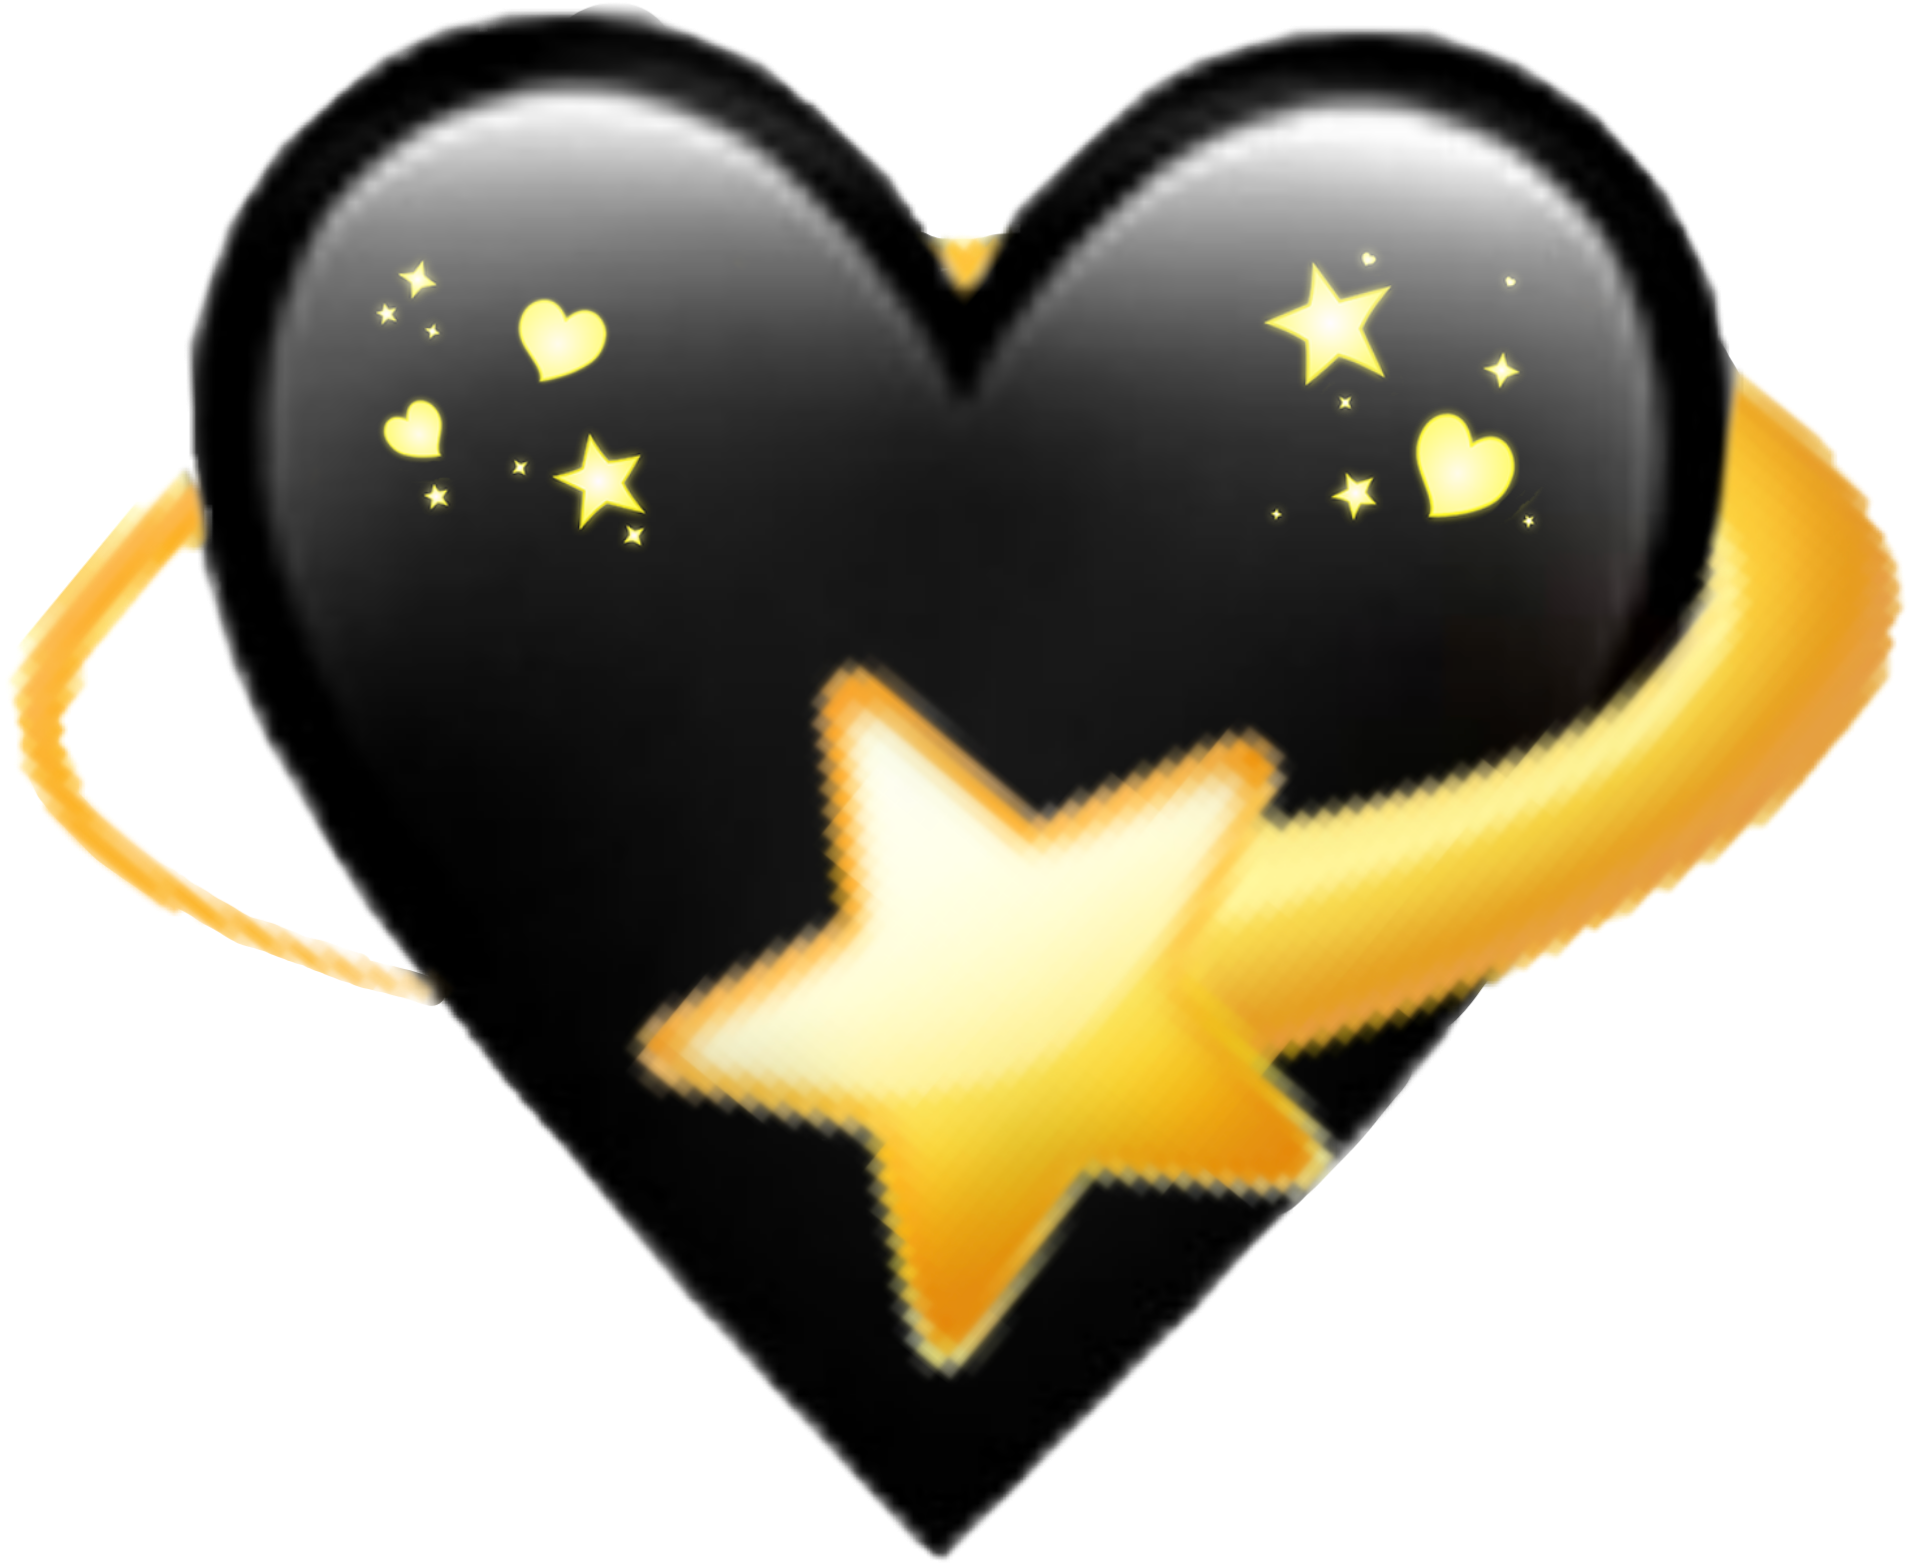 View Full Hd Black Heart Star Emoji Remix Sticker By Marras Heart Crown Black Hd Png Download And Find More Transparent Star Emoji Heart Crown Black Heart